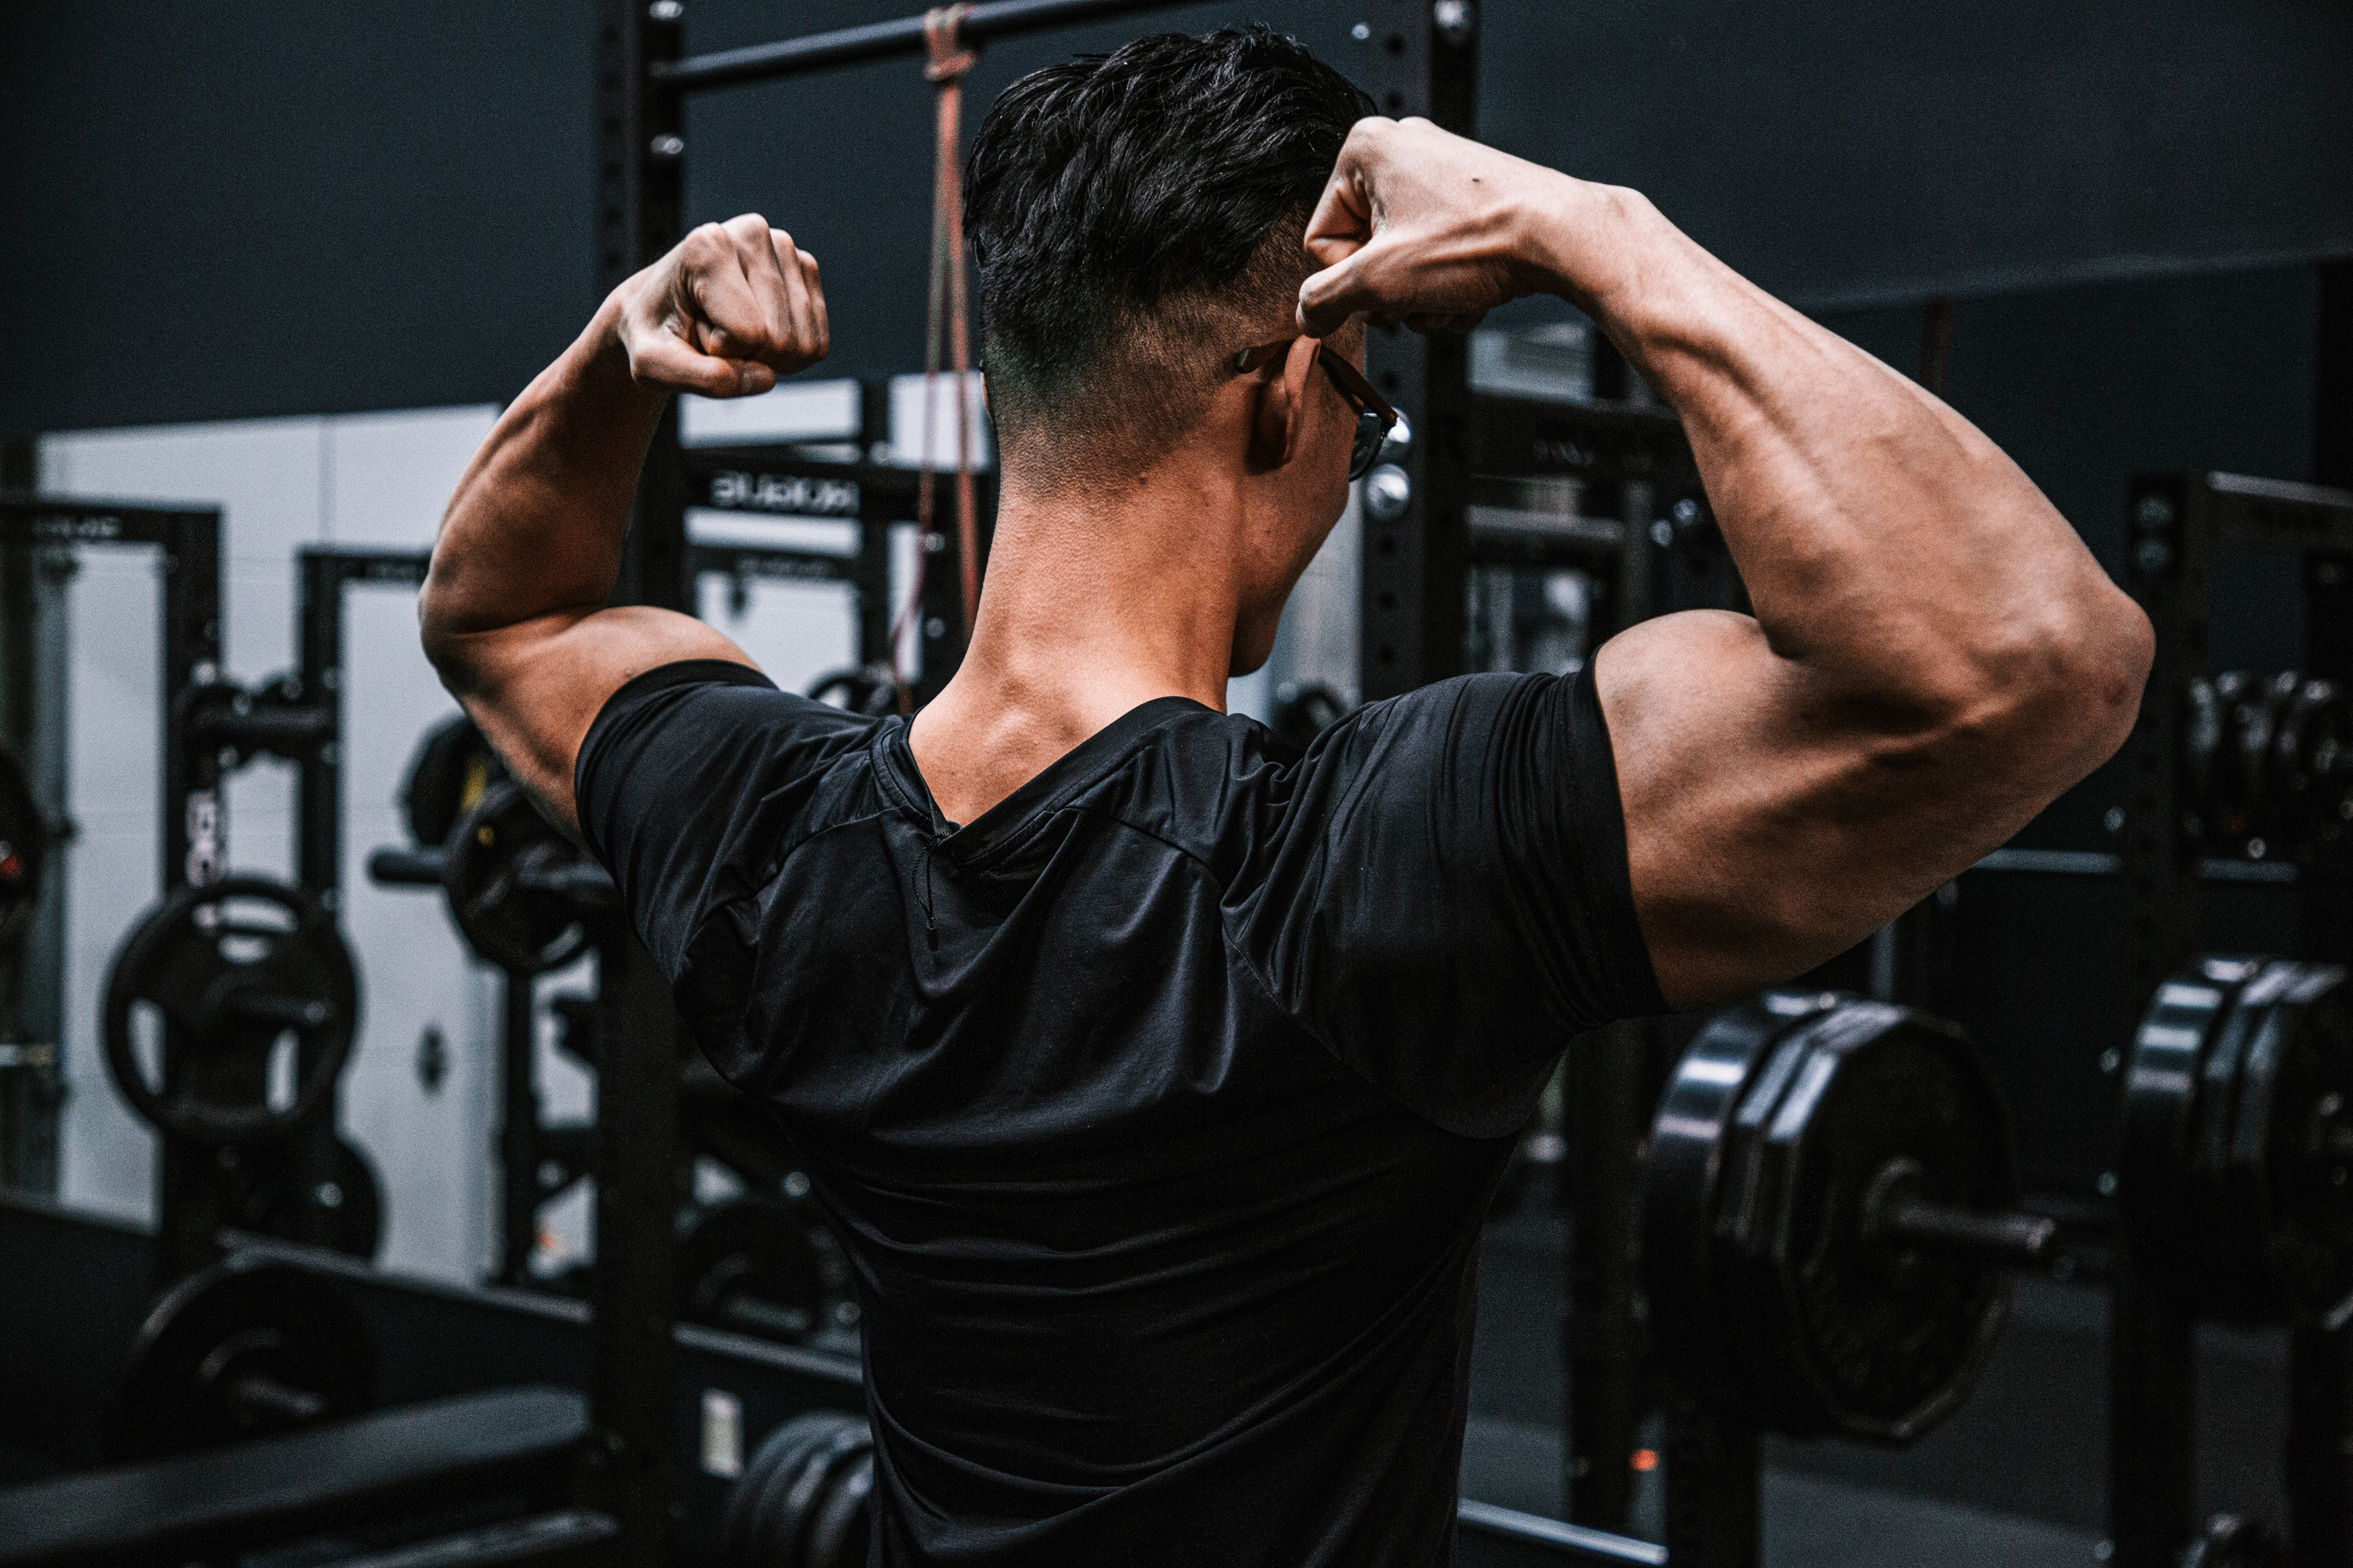 If you are looking for a properly structured training routine that builds strength and muscle, keep on reading. Push, pull, Legs is one of the most popular training routines that is used by professional athletes and casual gym goers alike. In this post we will be taking an in depth look at Ken's version of push pull legs.